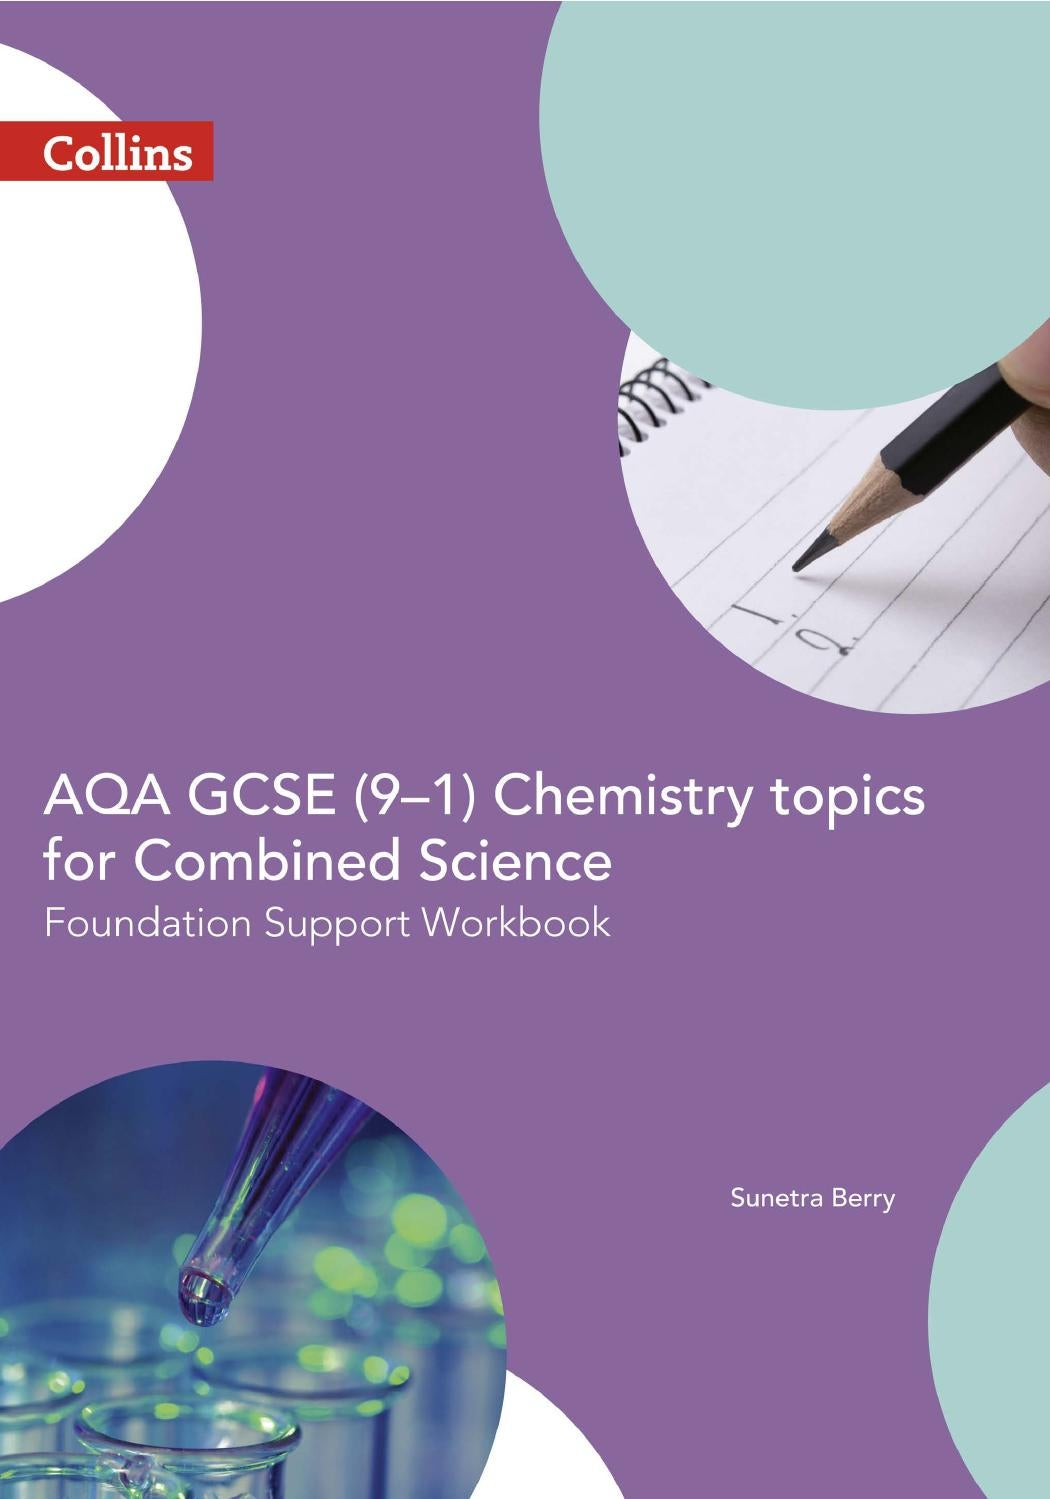 Aqa gcse 9 chemistry for combined science foundation support aqa gcse 9 chemistry for combined science foundation support workbook by collins issuu biocorpaavc Gallery